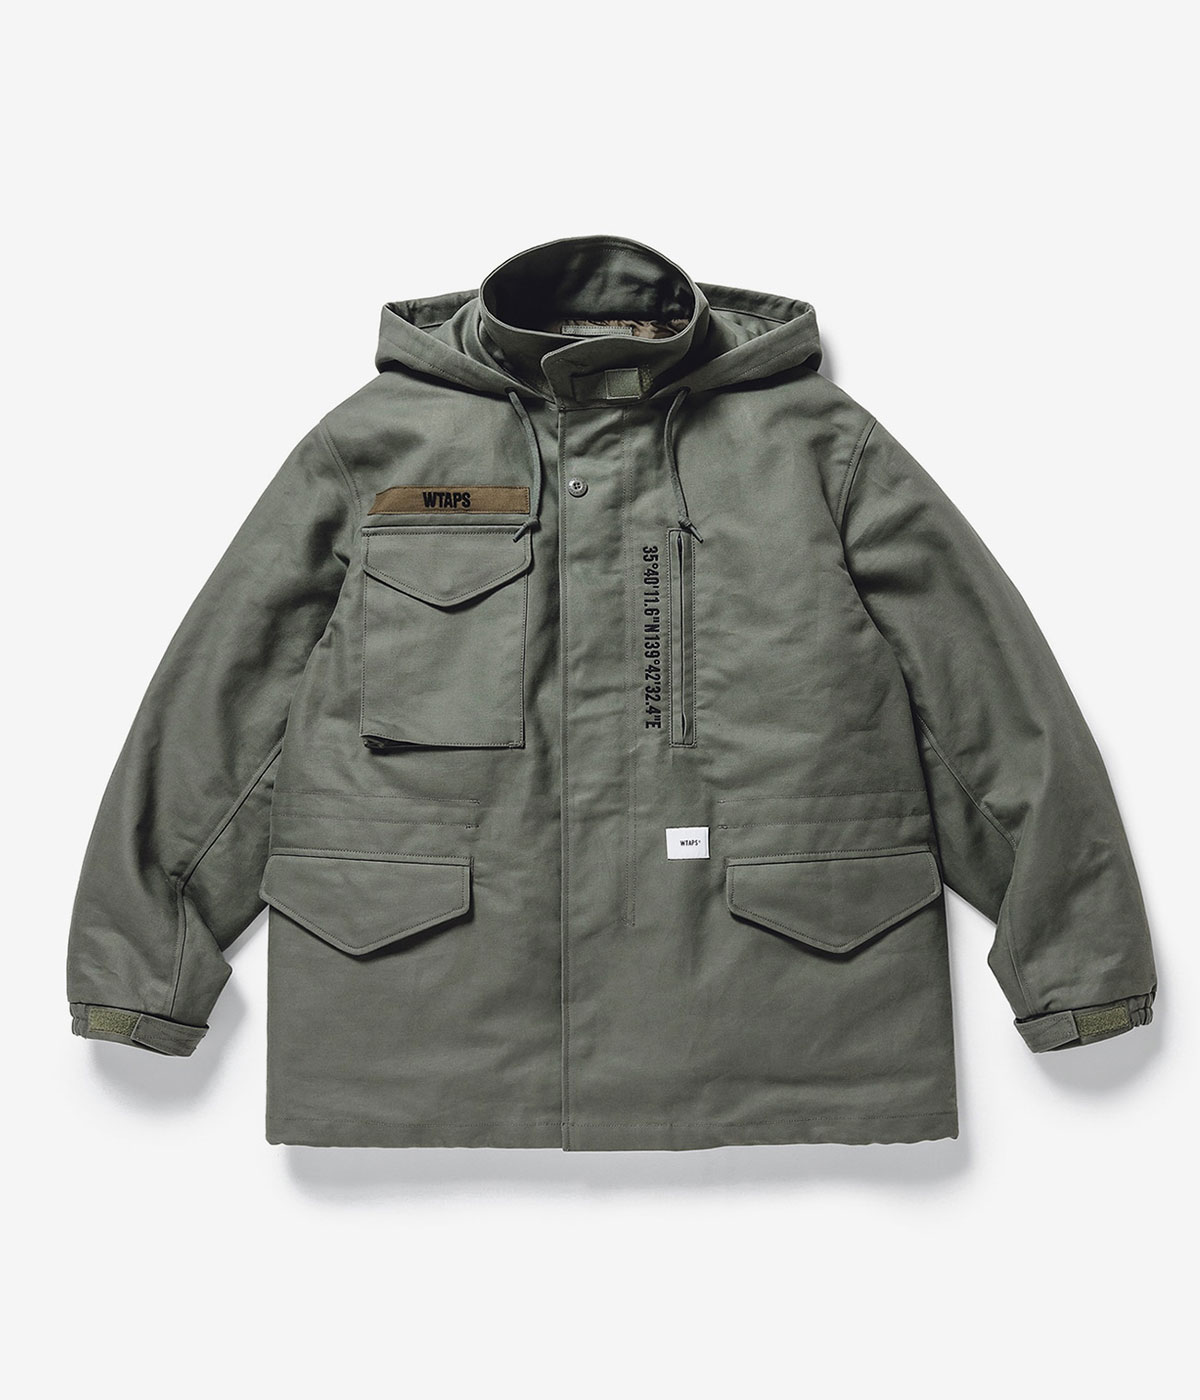 WSFM / JACKET. COTTON. TWILL